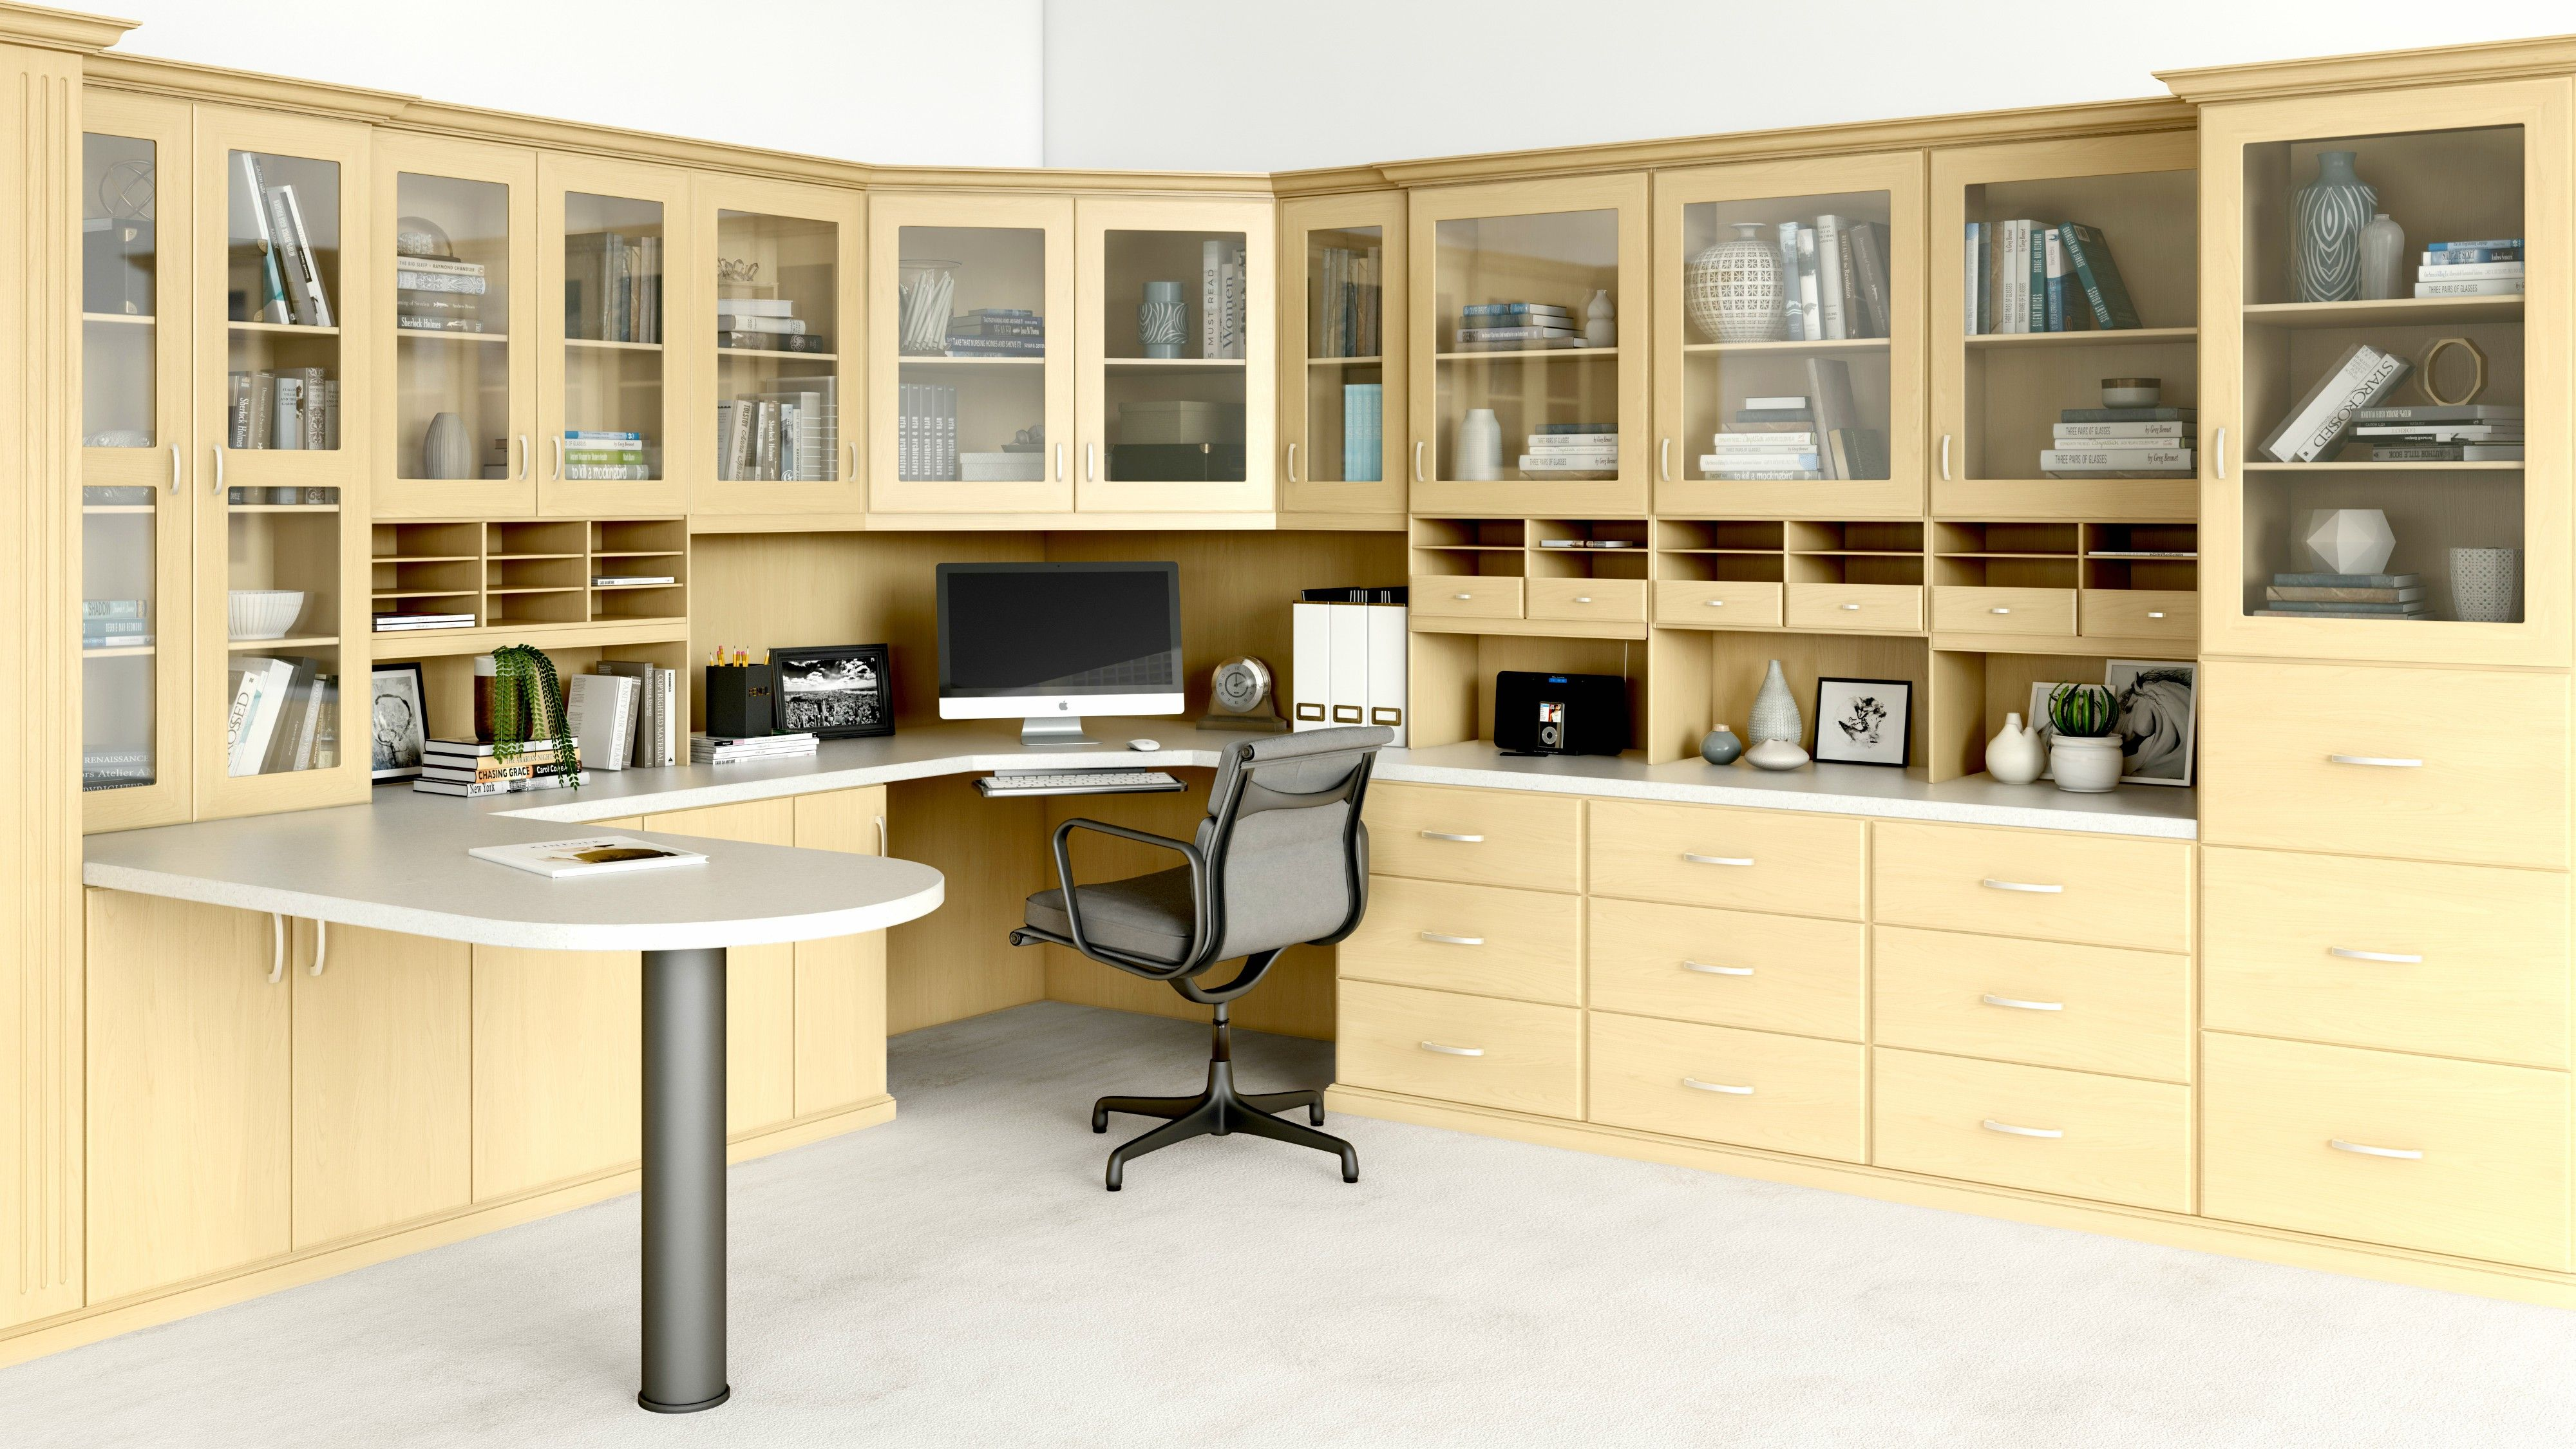 Home Office Cabinets And Organization Products With Images Home Office Organization Closet World Home